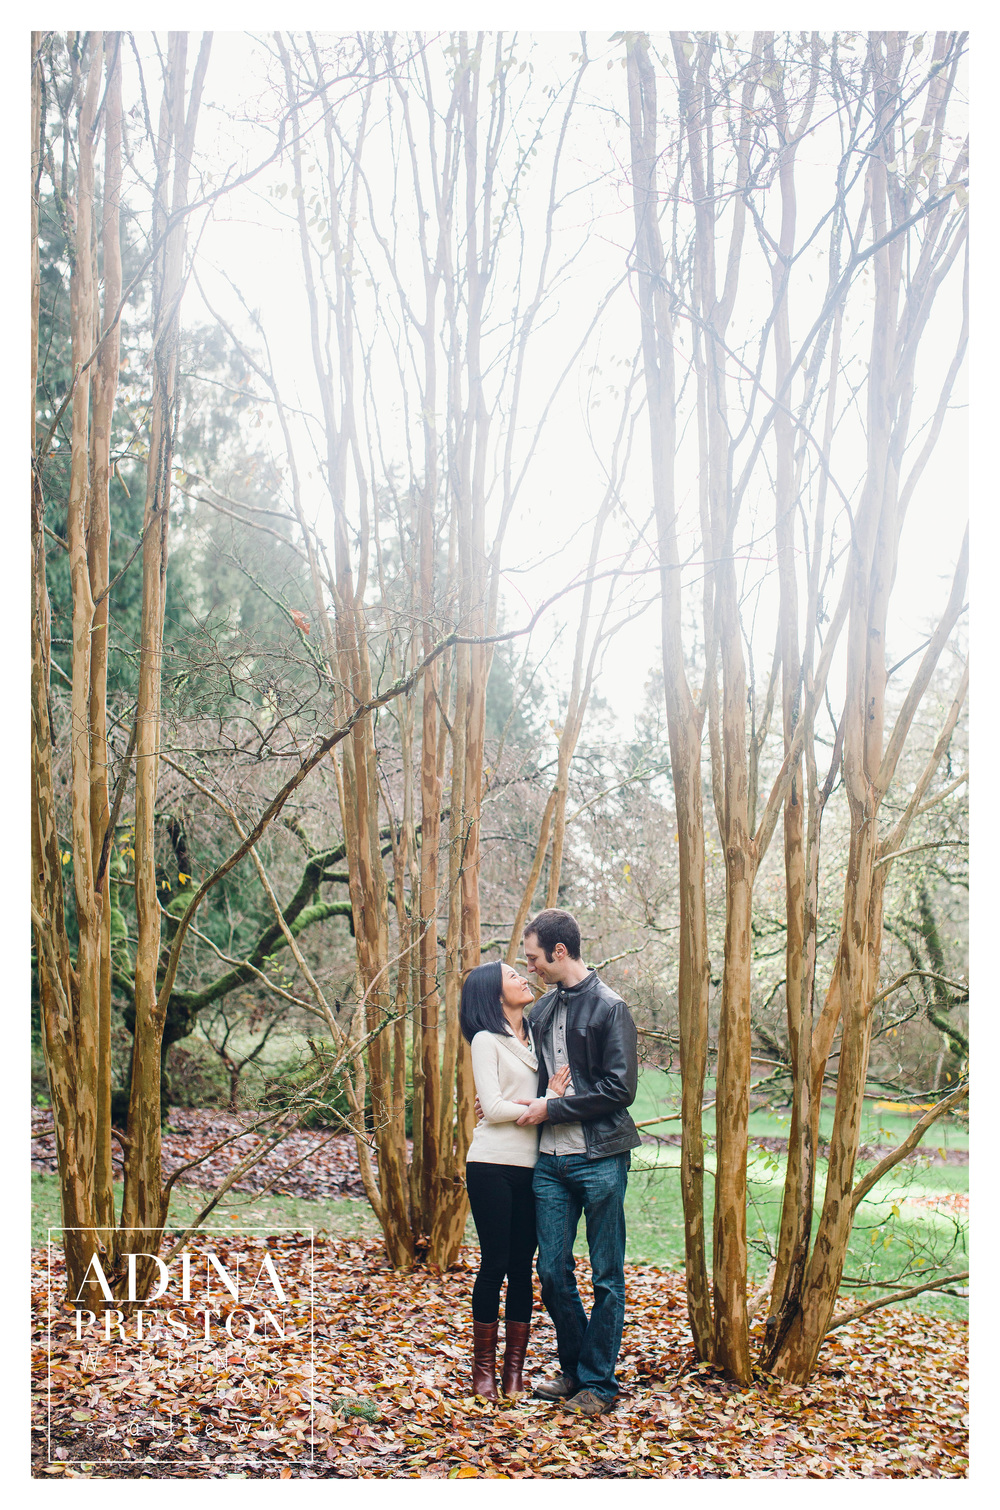 Hannah+Mike+Engagement©2016_Adina+Preston+Weddings_Seattle_4.jpg